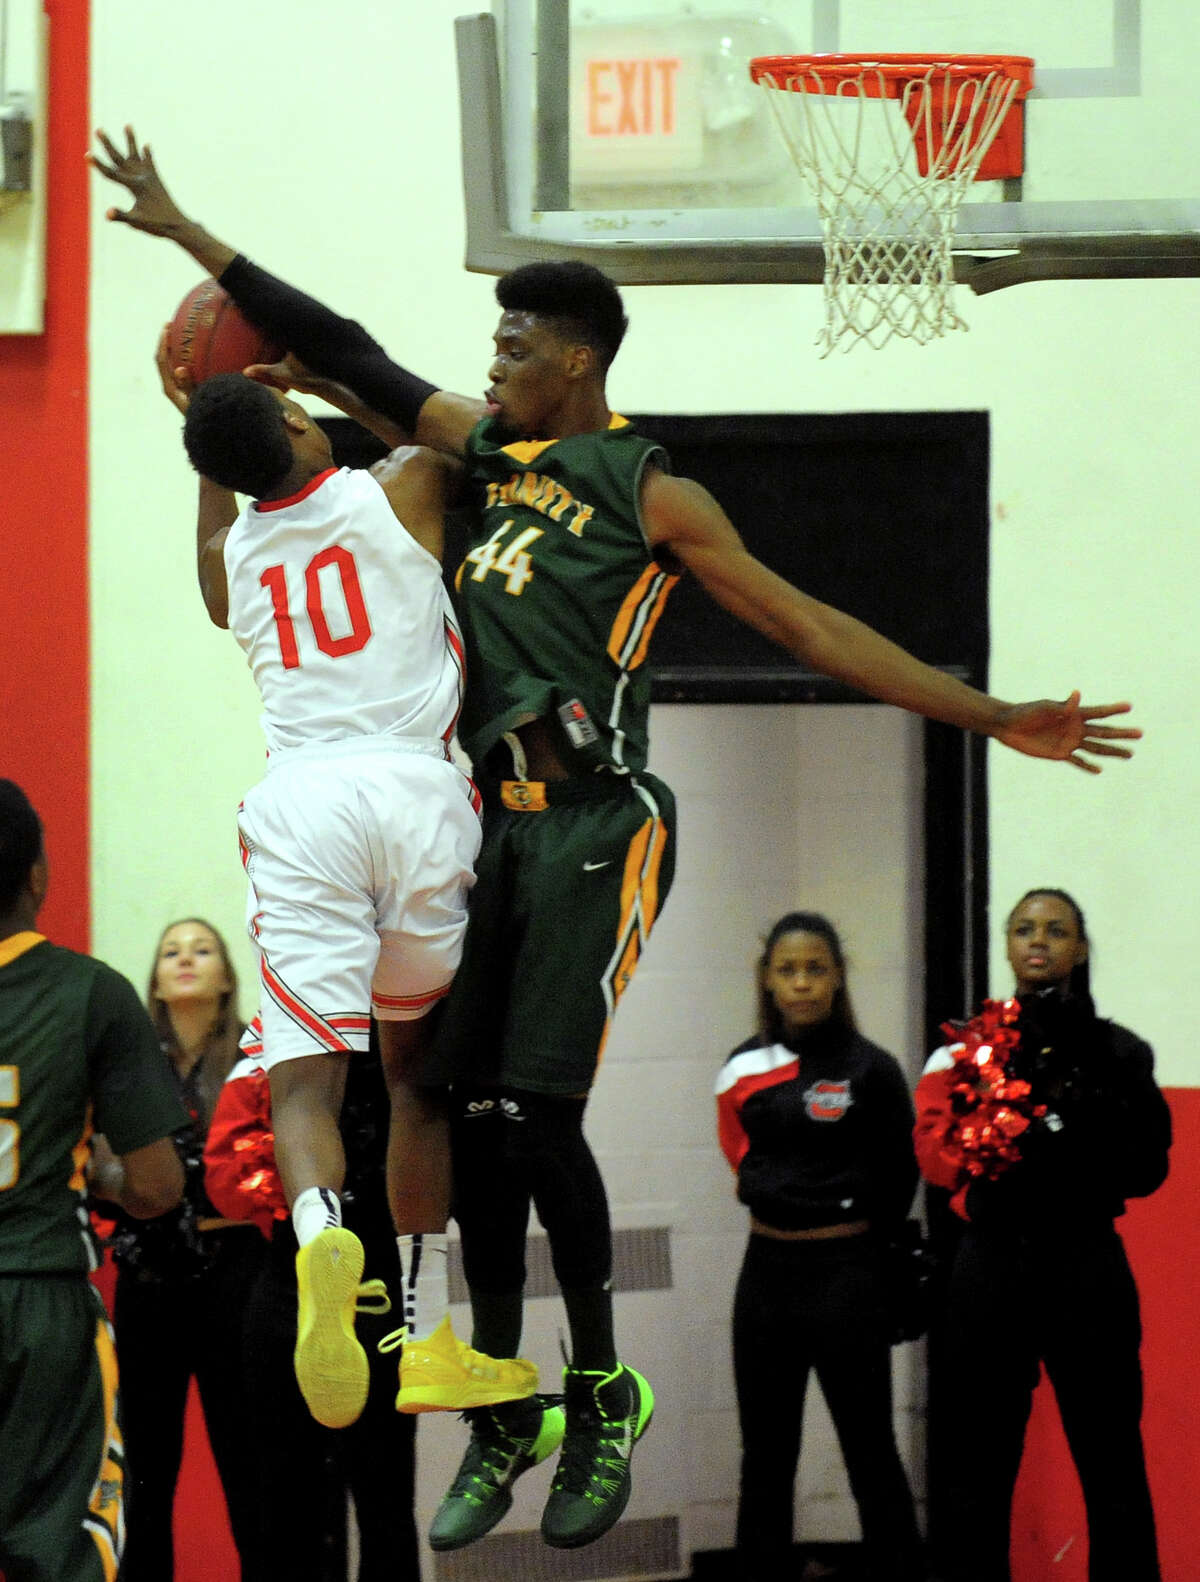 Trinity Catholic's Wyatt Garyk stops a shot attempt by Central's Sha'quan Bretoux, during boys basketball action in Bridgeport, Conn. on Wednesday January 8, 2014.